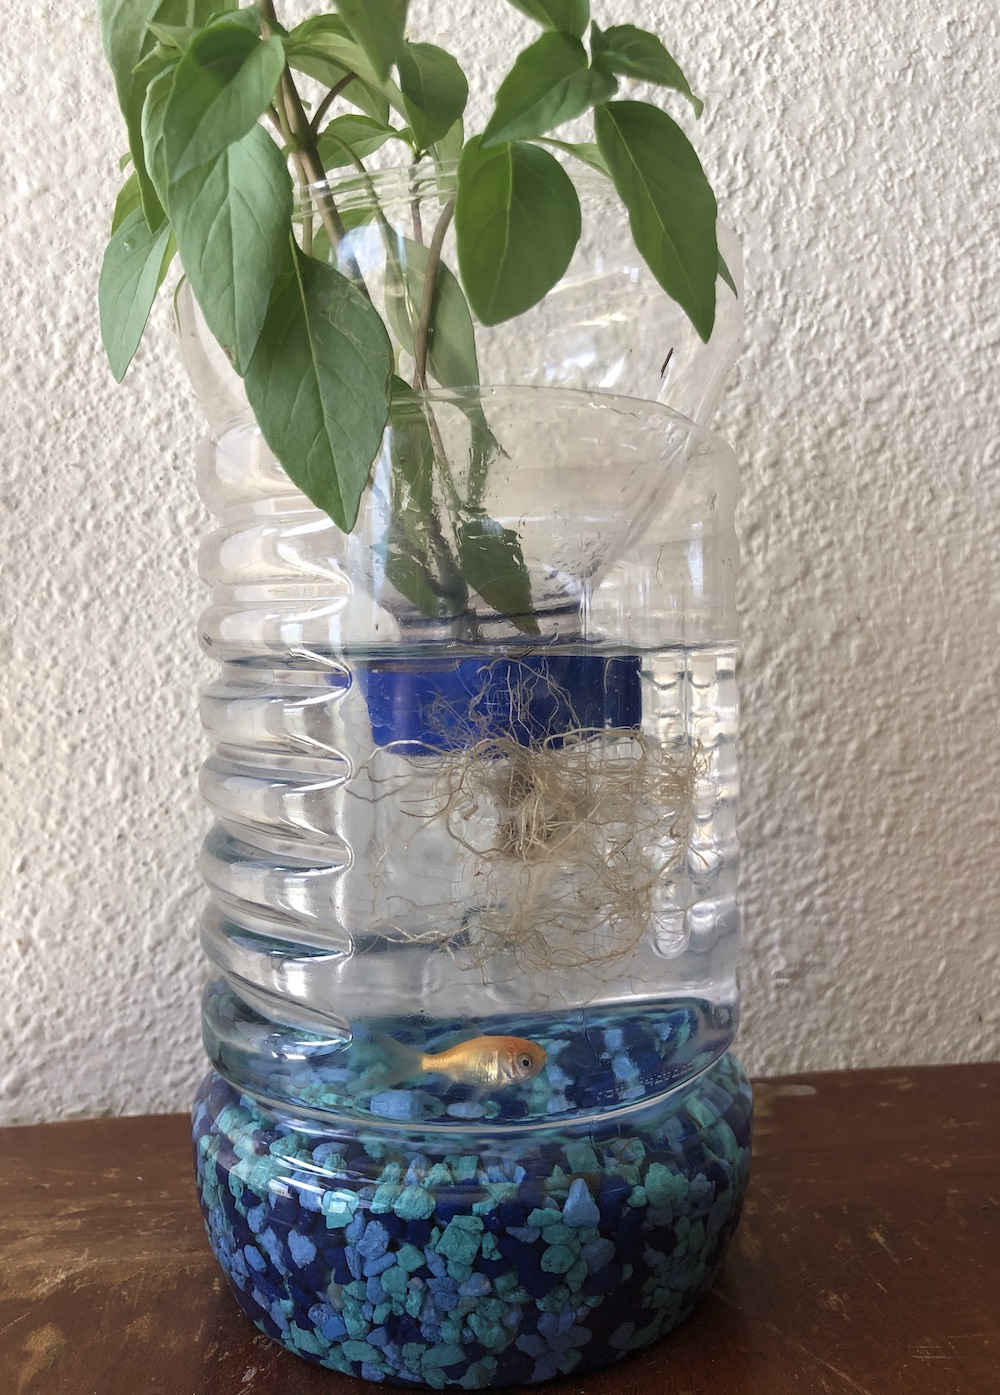 <p>Fig. 6. Complete aquaponics-in-a-bottle with aquarium rocks, a small fish, and a basil plant.</p>